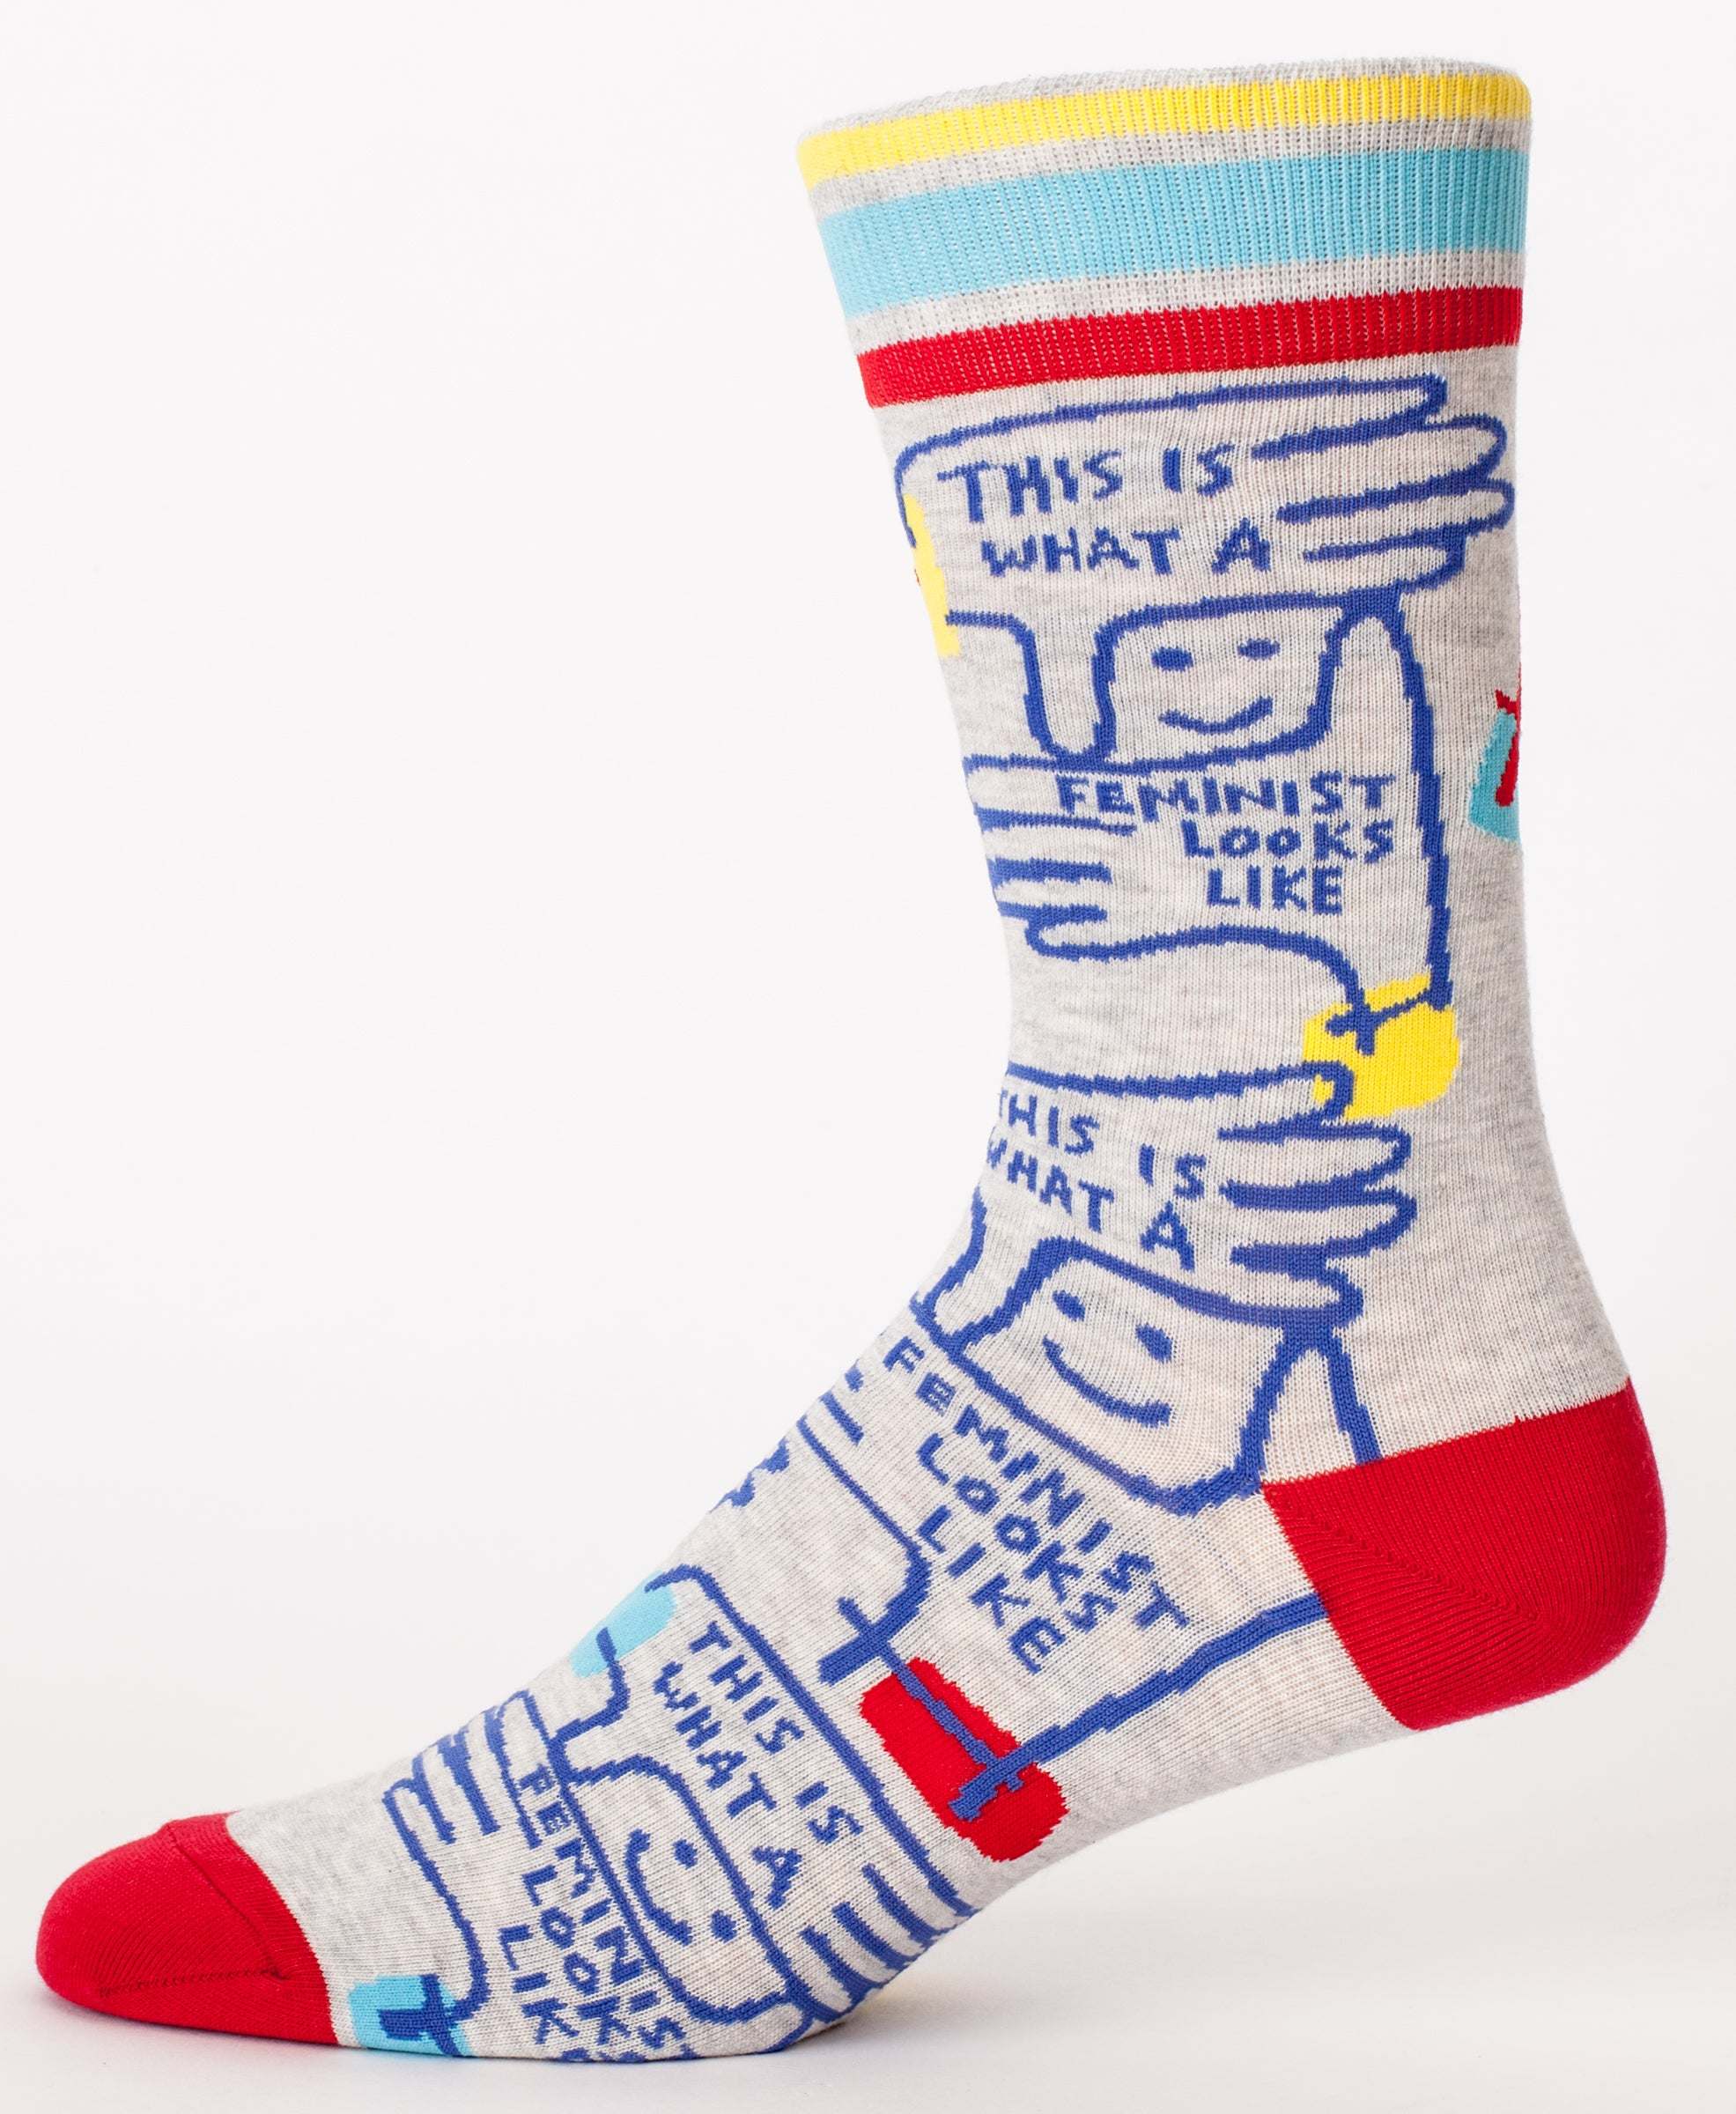 Blue Q Mens SW846 Cotton Crew Fashion Socks, Feminist Looks